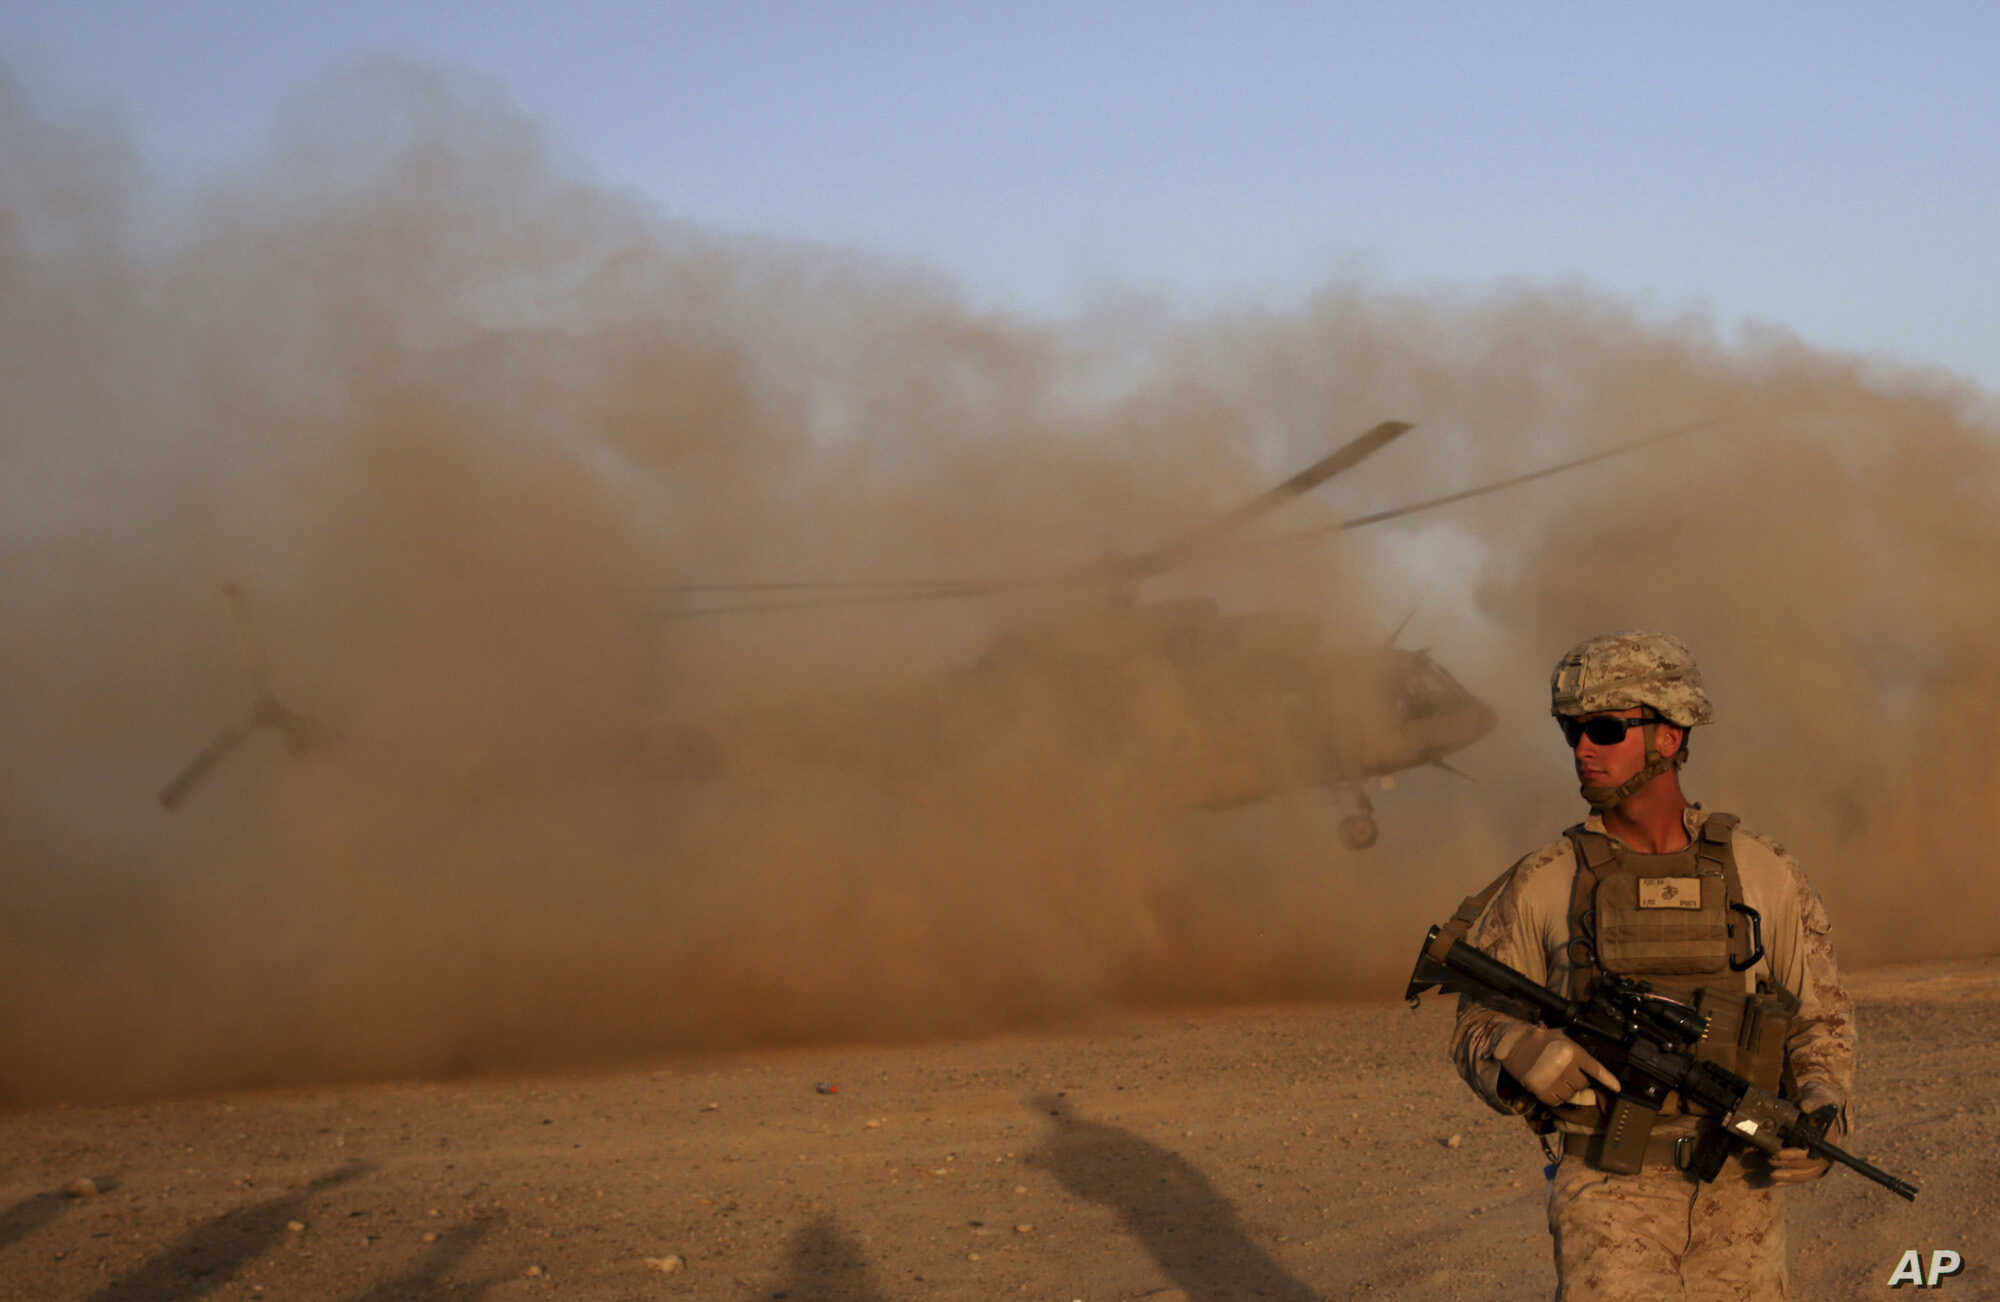 A U.S. Marine takes part during a training session for Afghan army commandos in Shorab military camp in Helmand province, Afghanistan, Aug. 27, 2017.